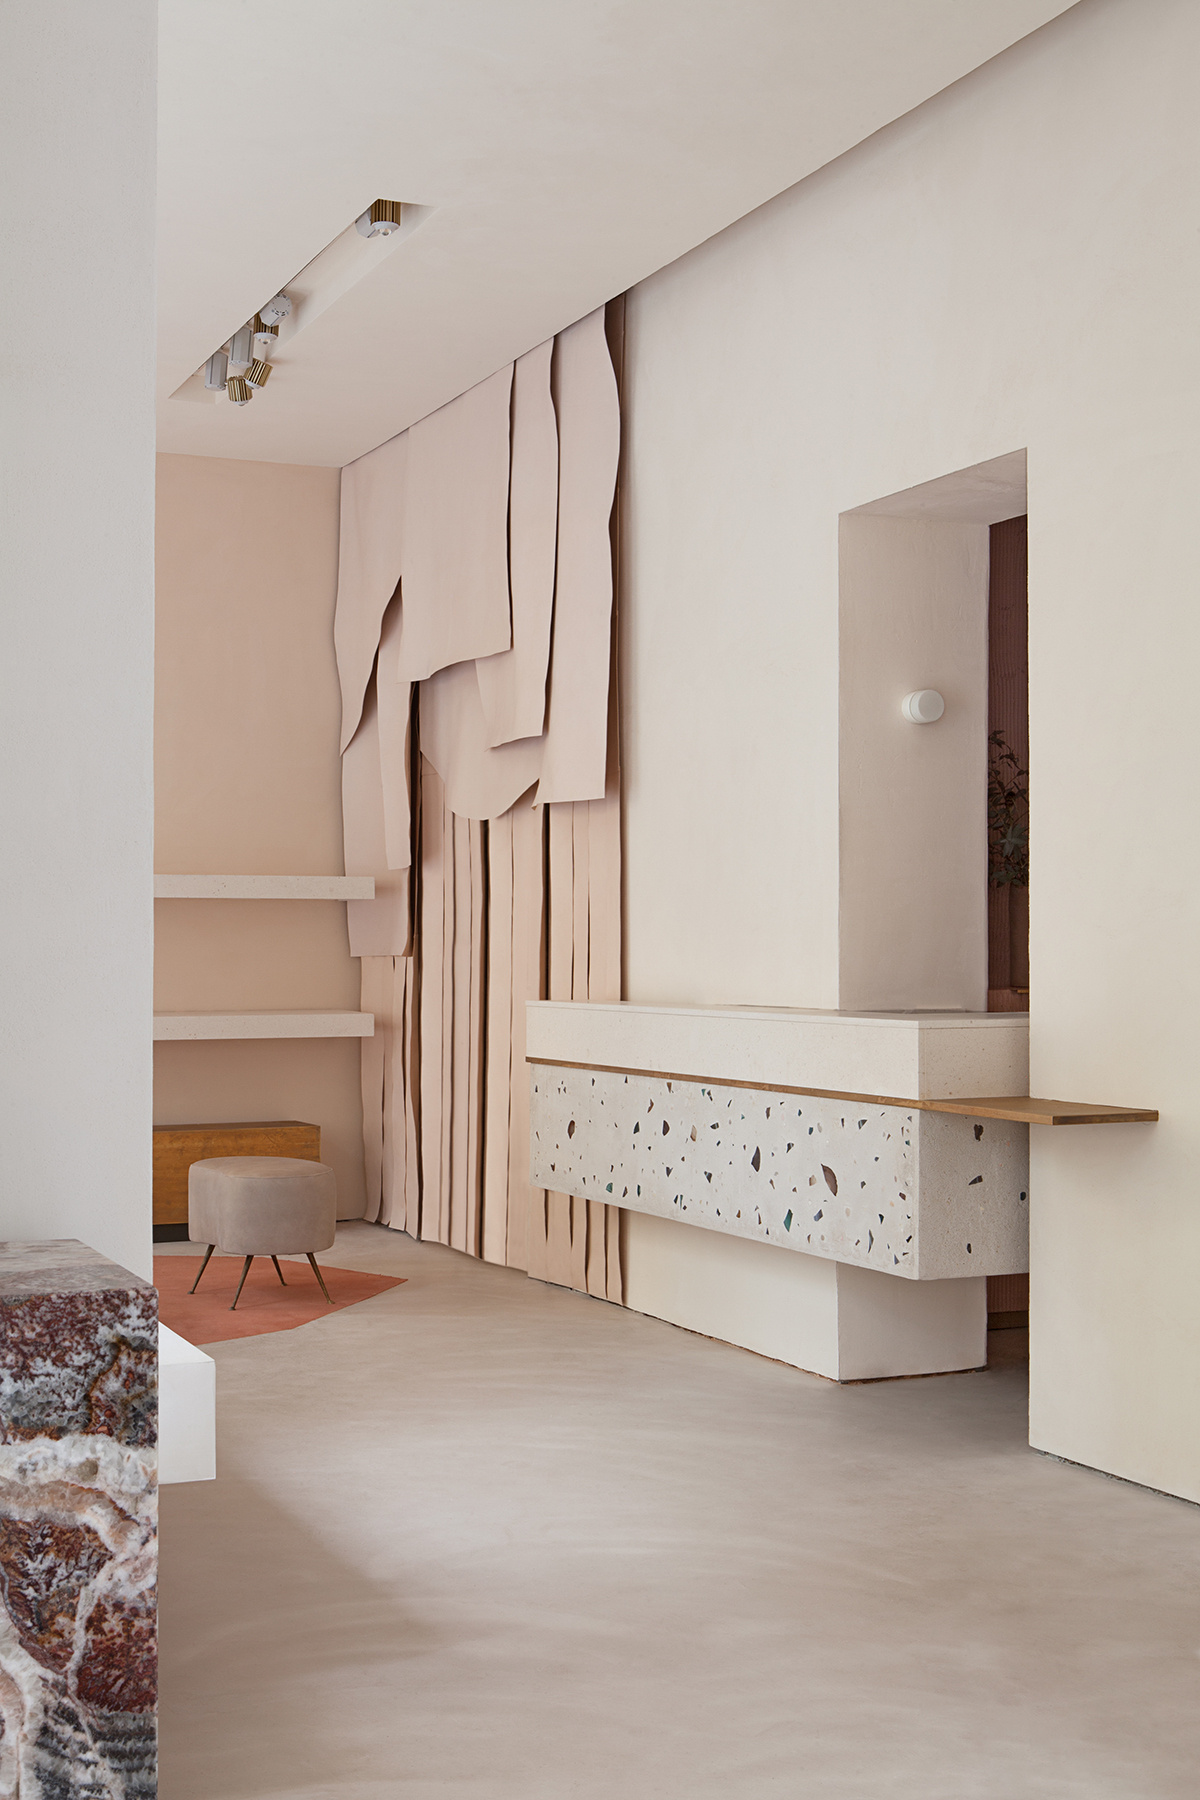 The newly designed  Malababa  store in Madrid, featuring terrazzo and dusty pink interiors.